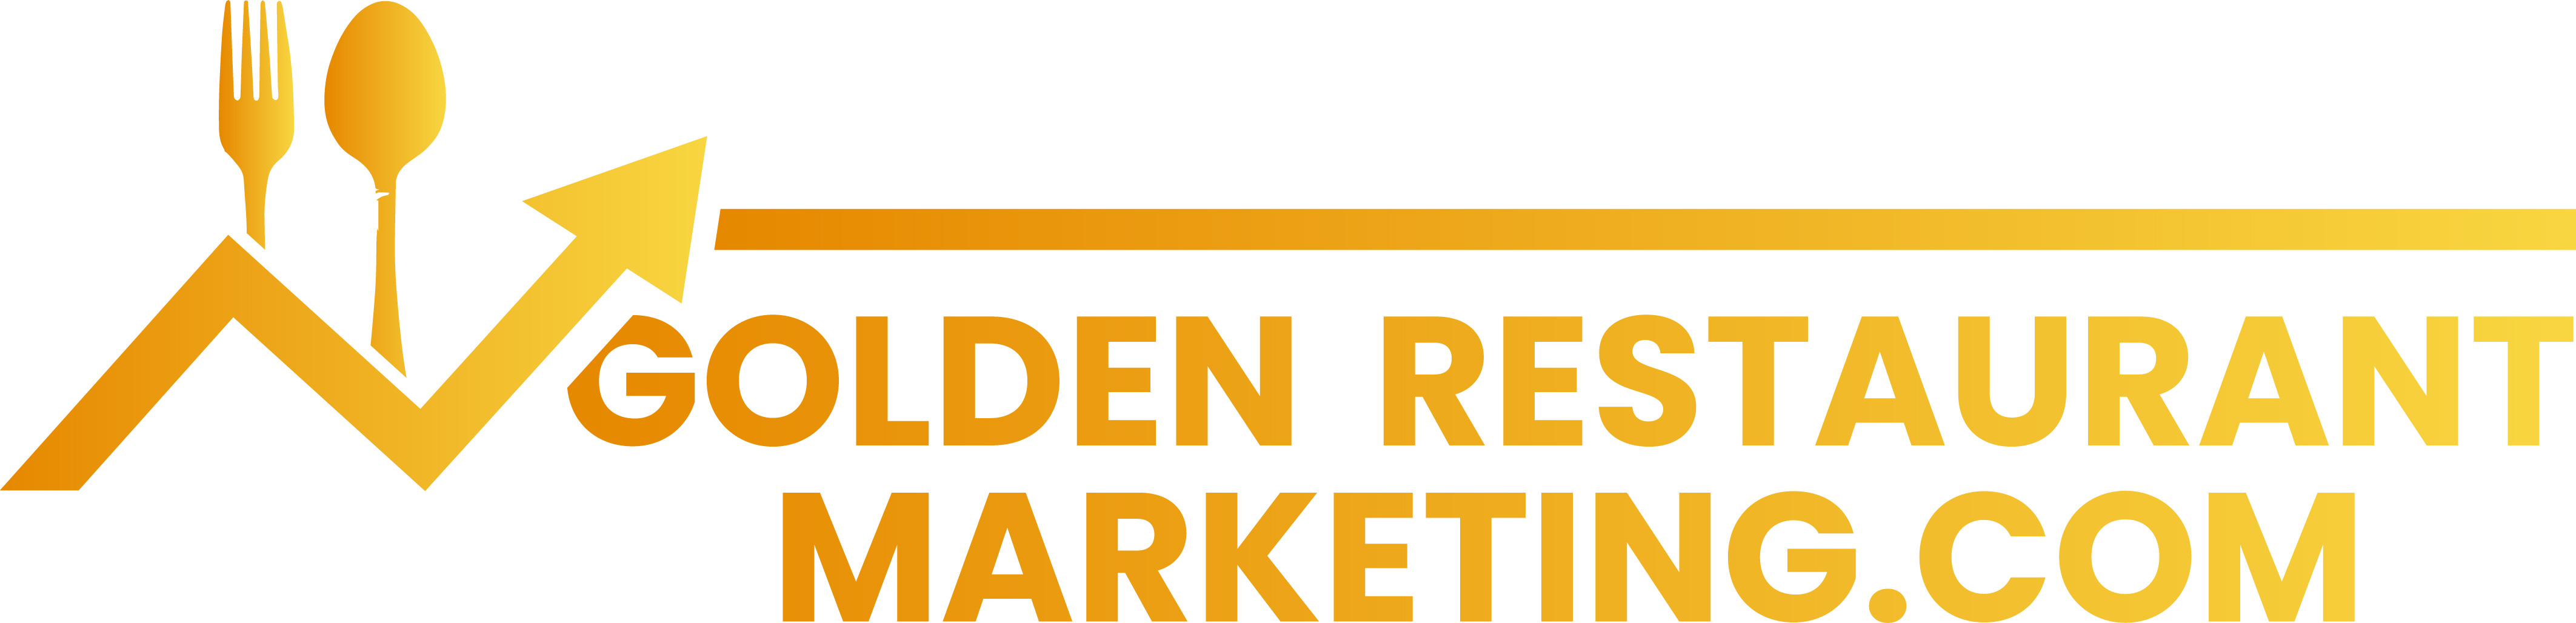 Restaurant Marketing Agency Logo